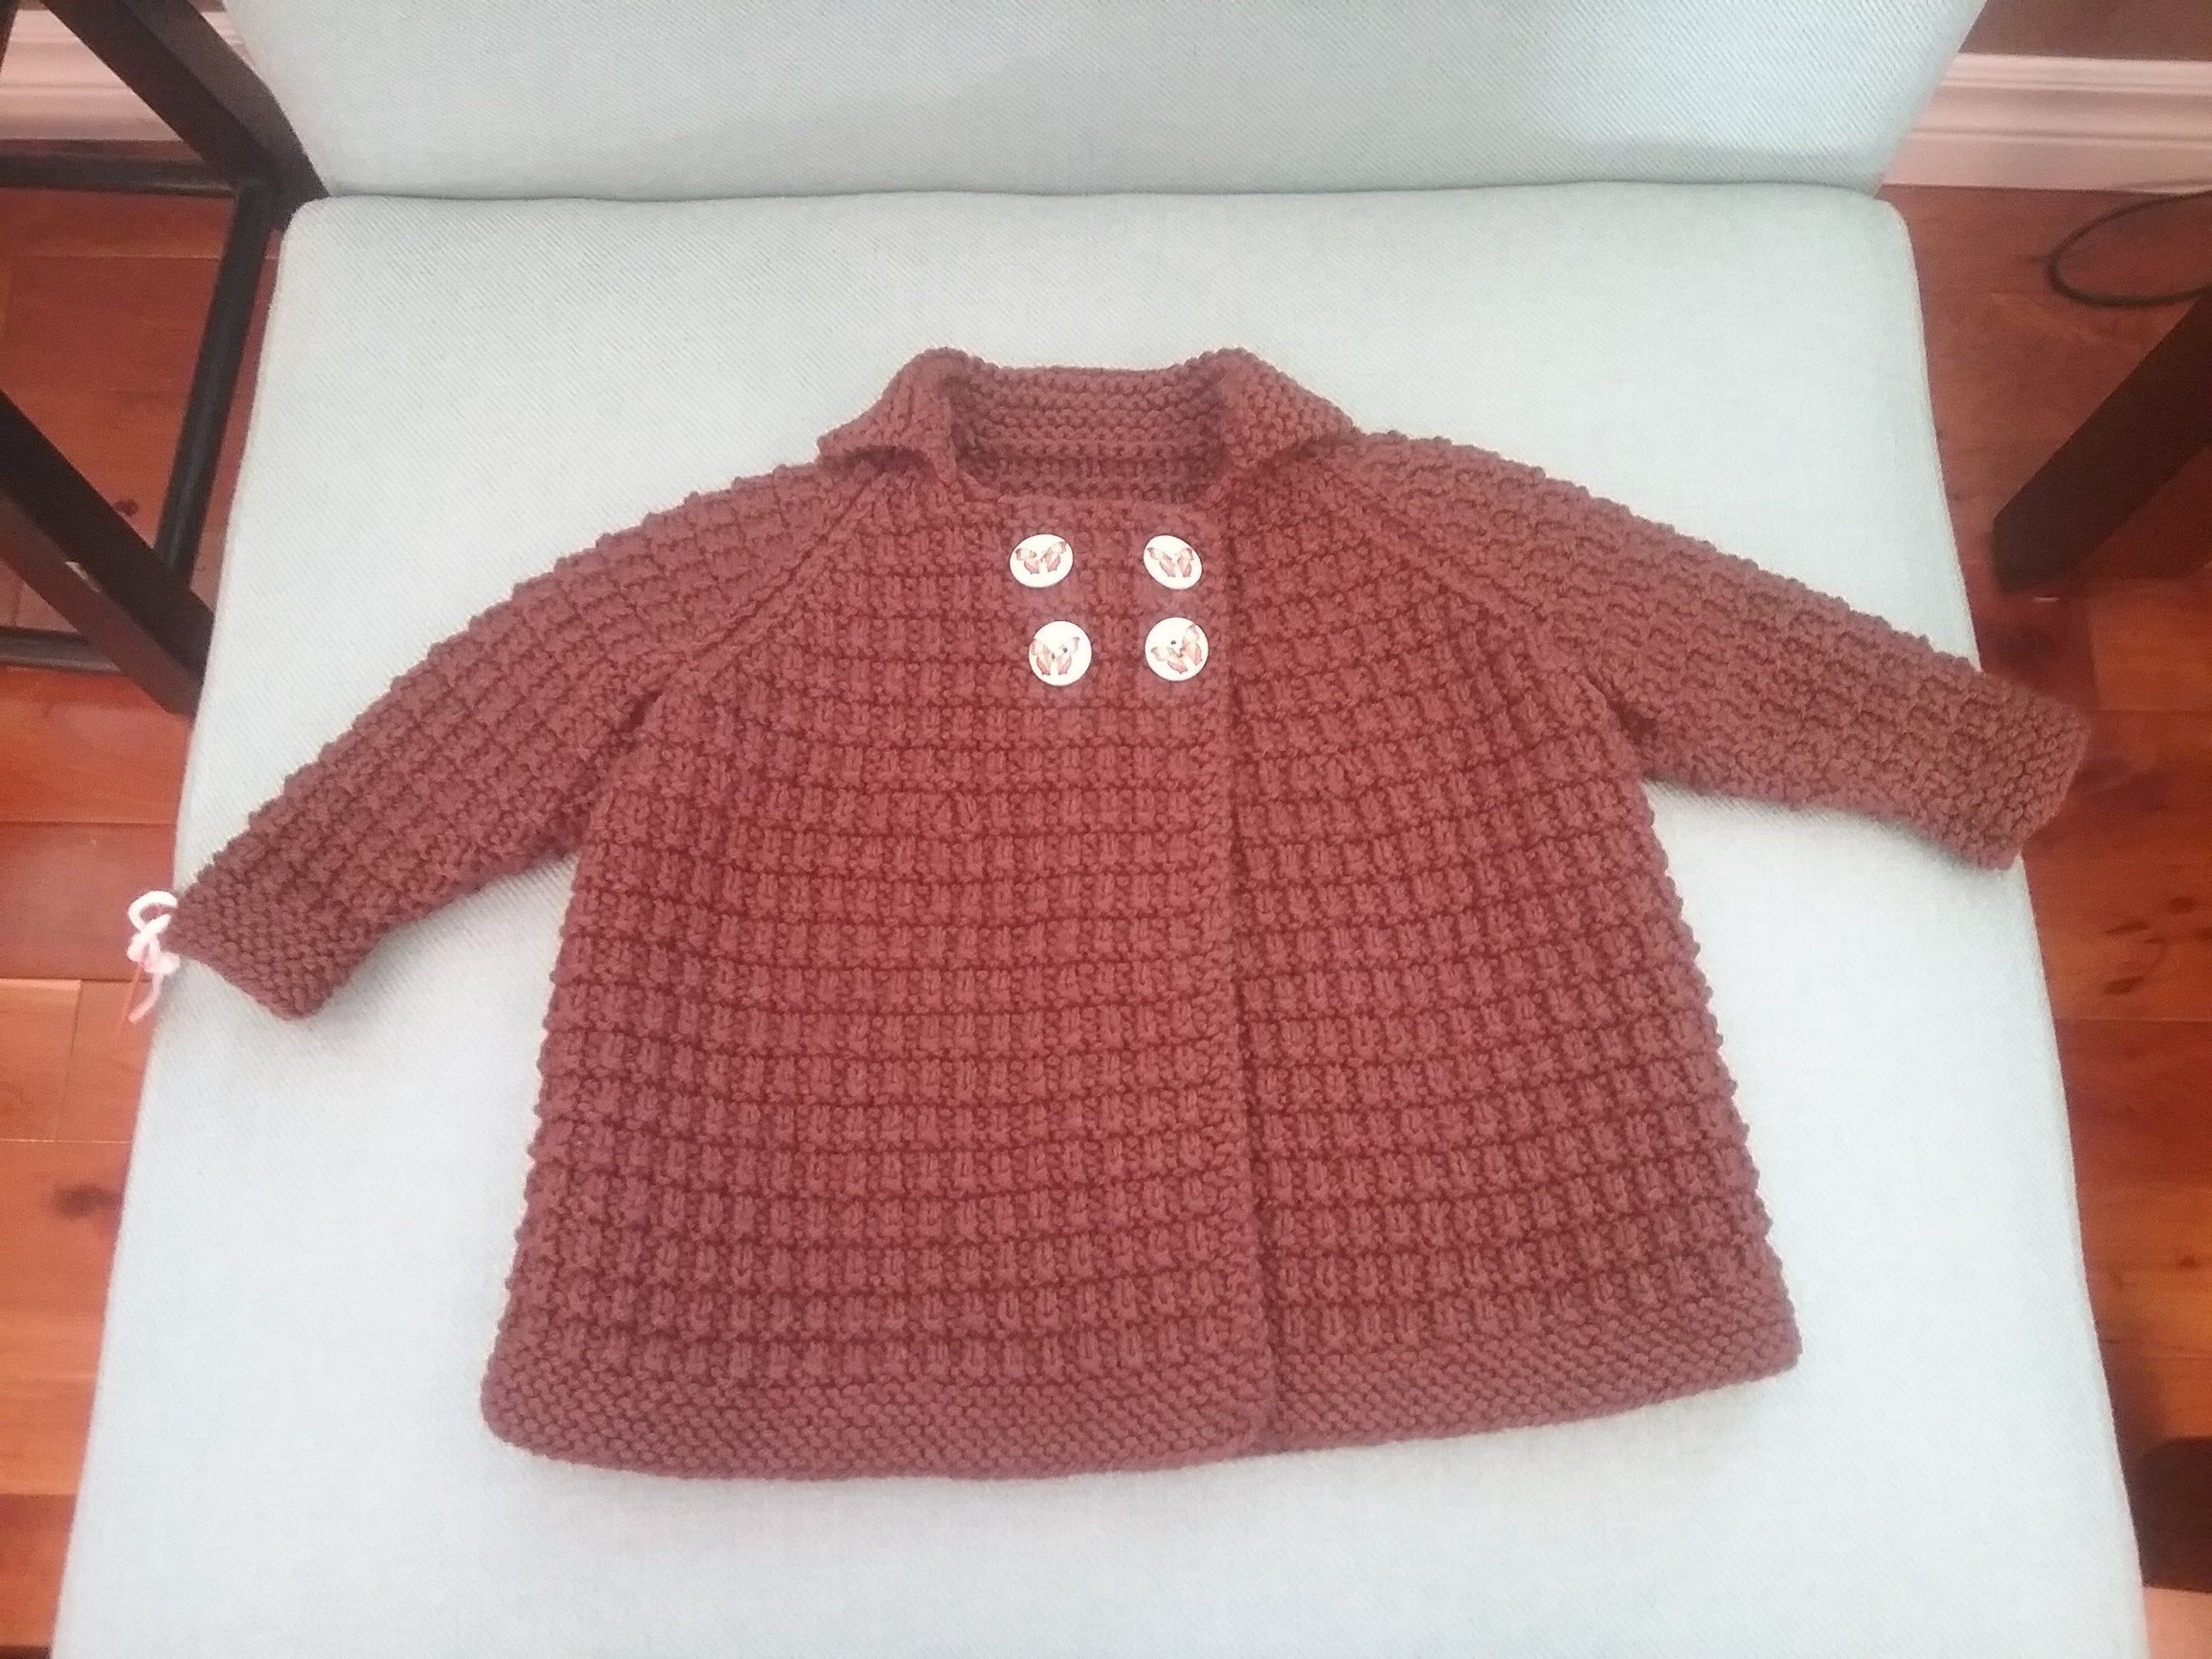 Hand Knit Childrens Sweater - Size 6-12 Months #children'ssweaters Hand Knit Childrens Sweater Available in - Chocolate Brown Size 6-12 months Measurements: Chest - 23 inches Length - 12.75 inches Sleeve Seam - 6.25 inches $45.00 each #childrenssweaters